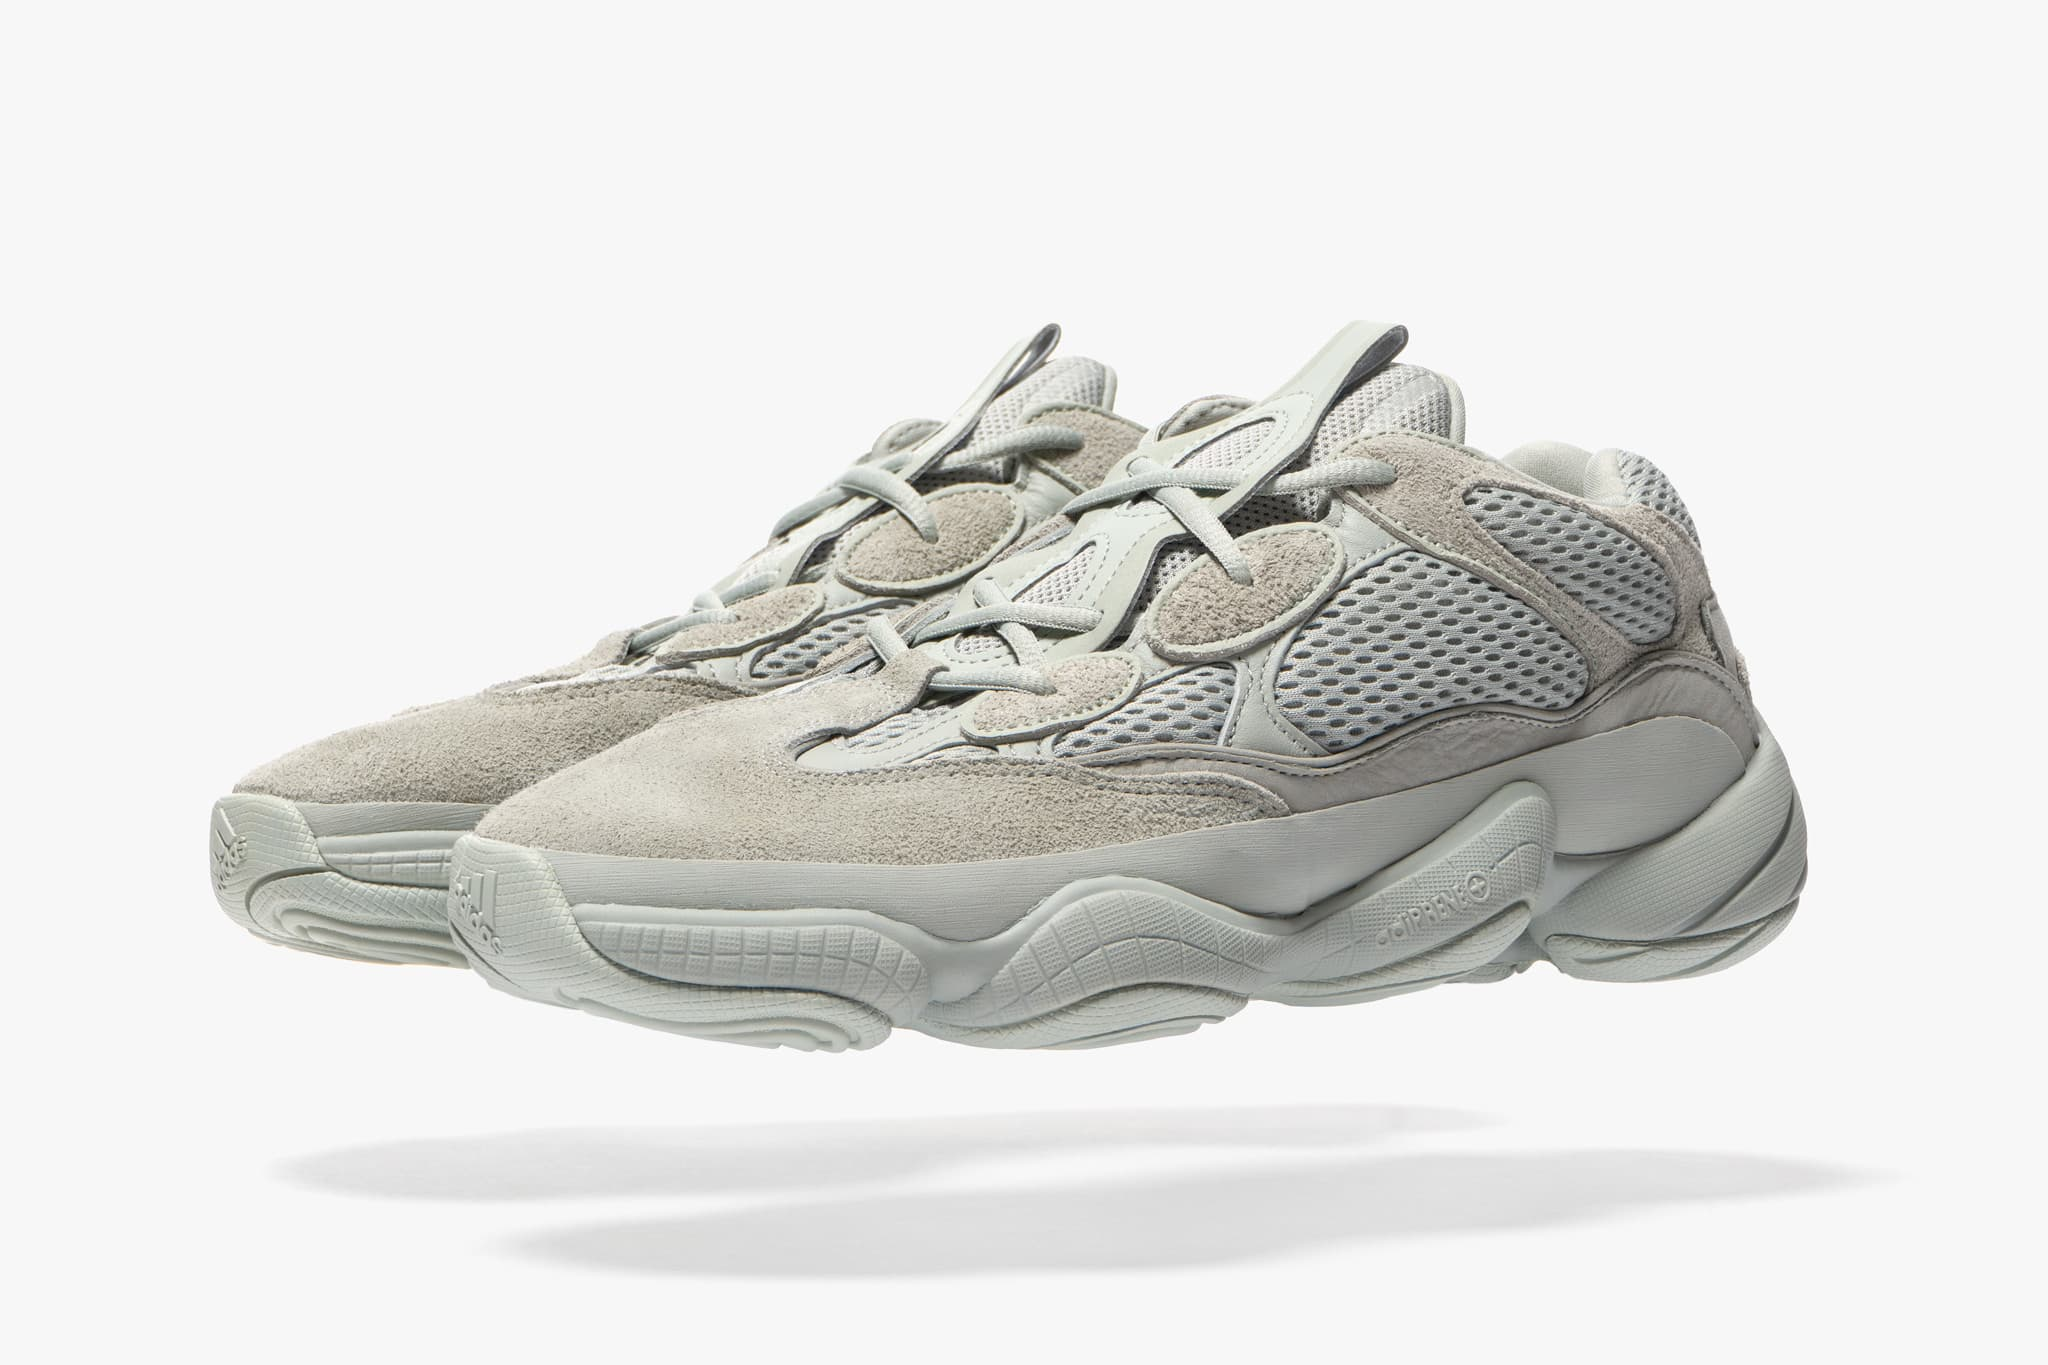 quality design 65be2 c6693 adidas Yeezy 500 'Salt' | Release Date: 11.30.18 | HAVEN